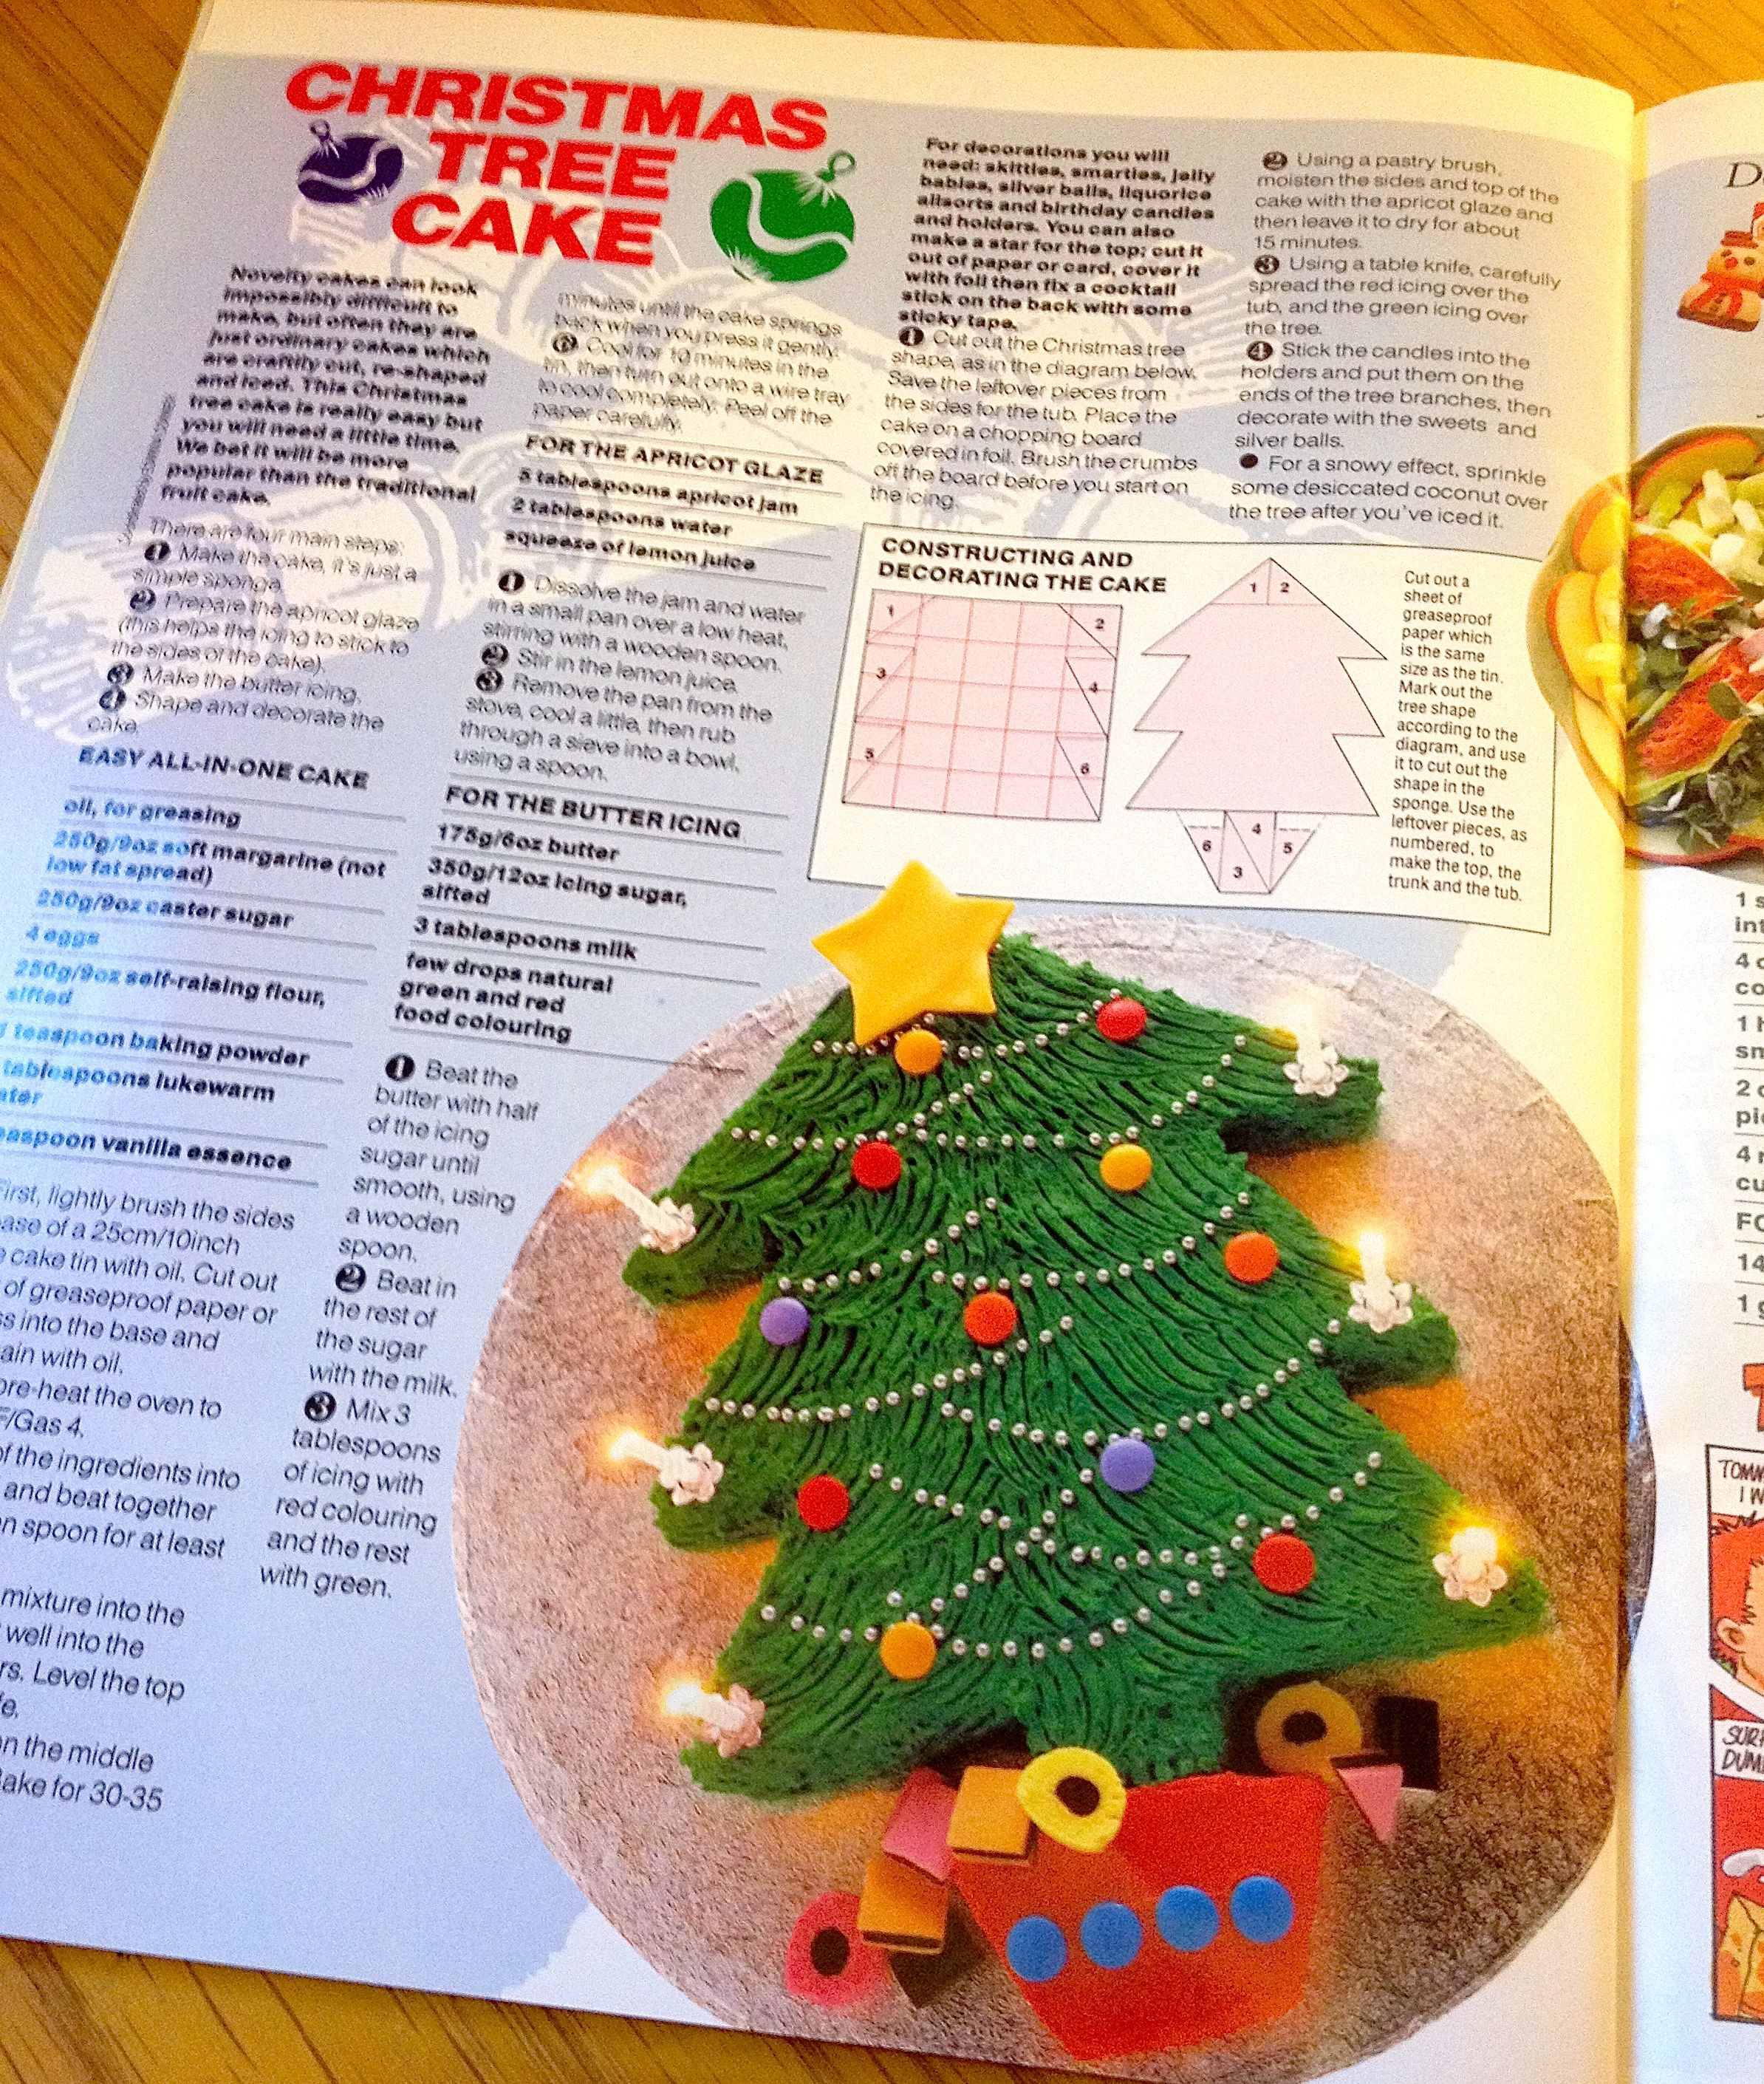 What christmas looked like in 1989 the first bbc good food magazine bbc good food magazine december 1989 christmas tree cake forumfinder Choice Image